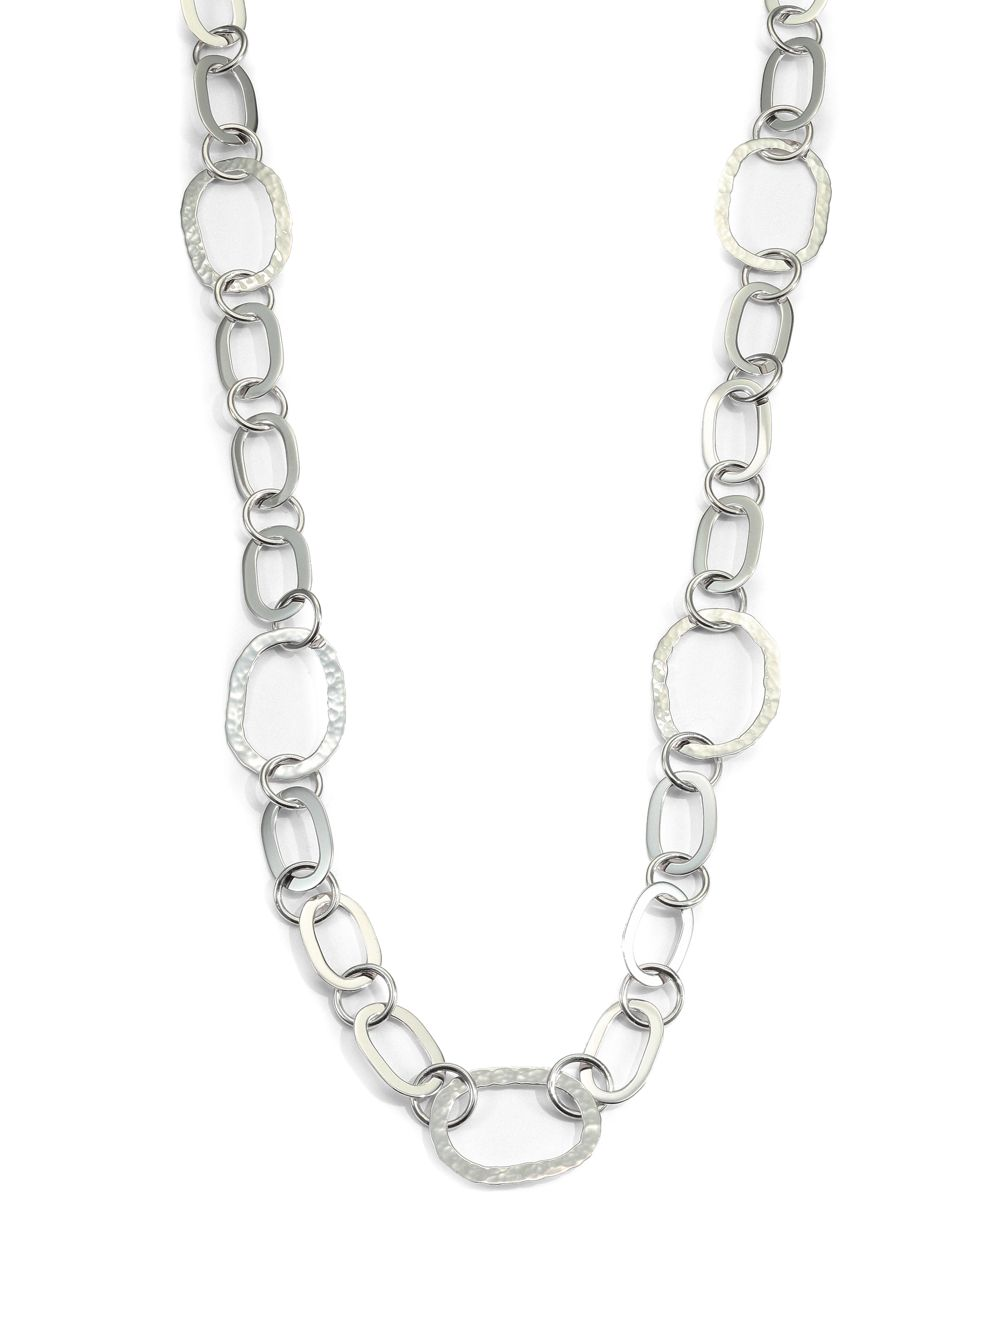 Saks fifth avenue Sterling Silver Mixed Link Necklace in ...